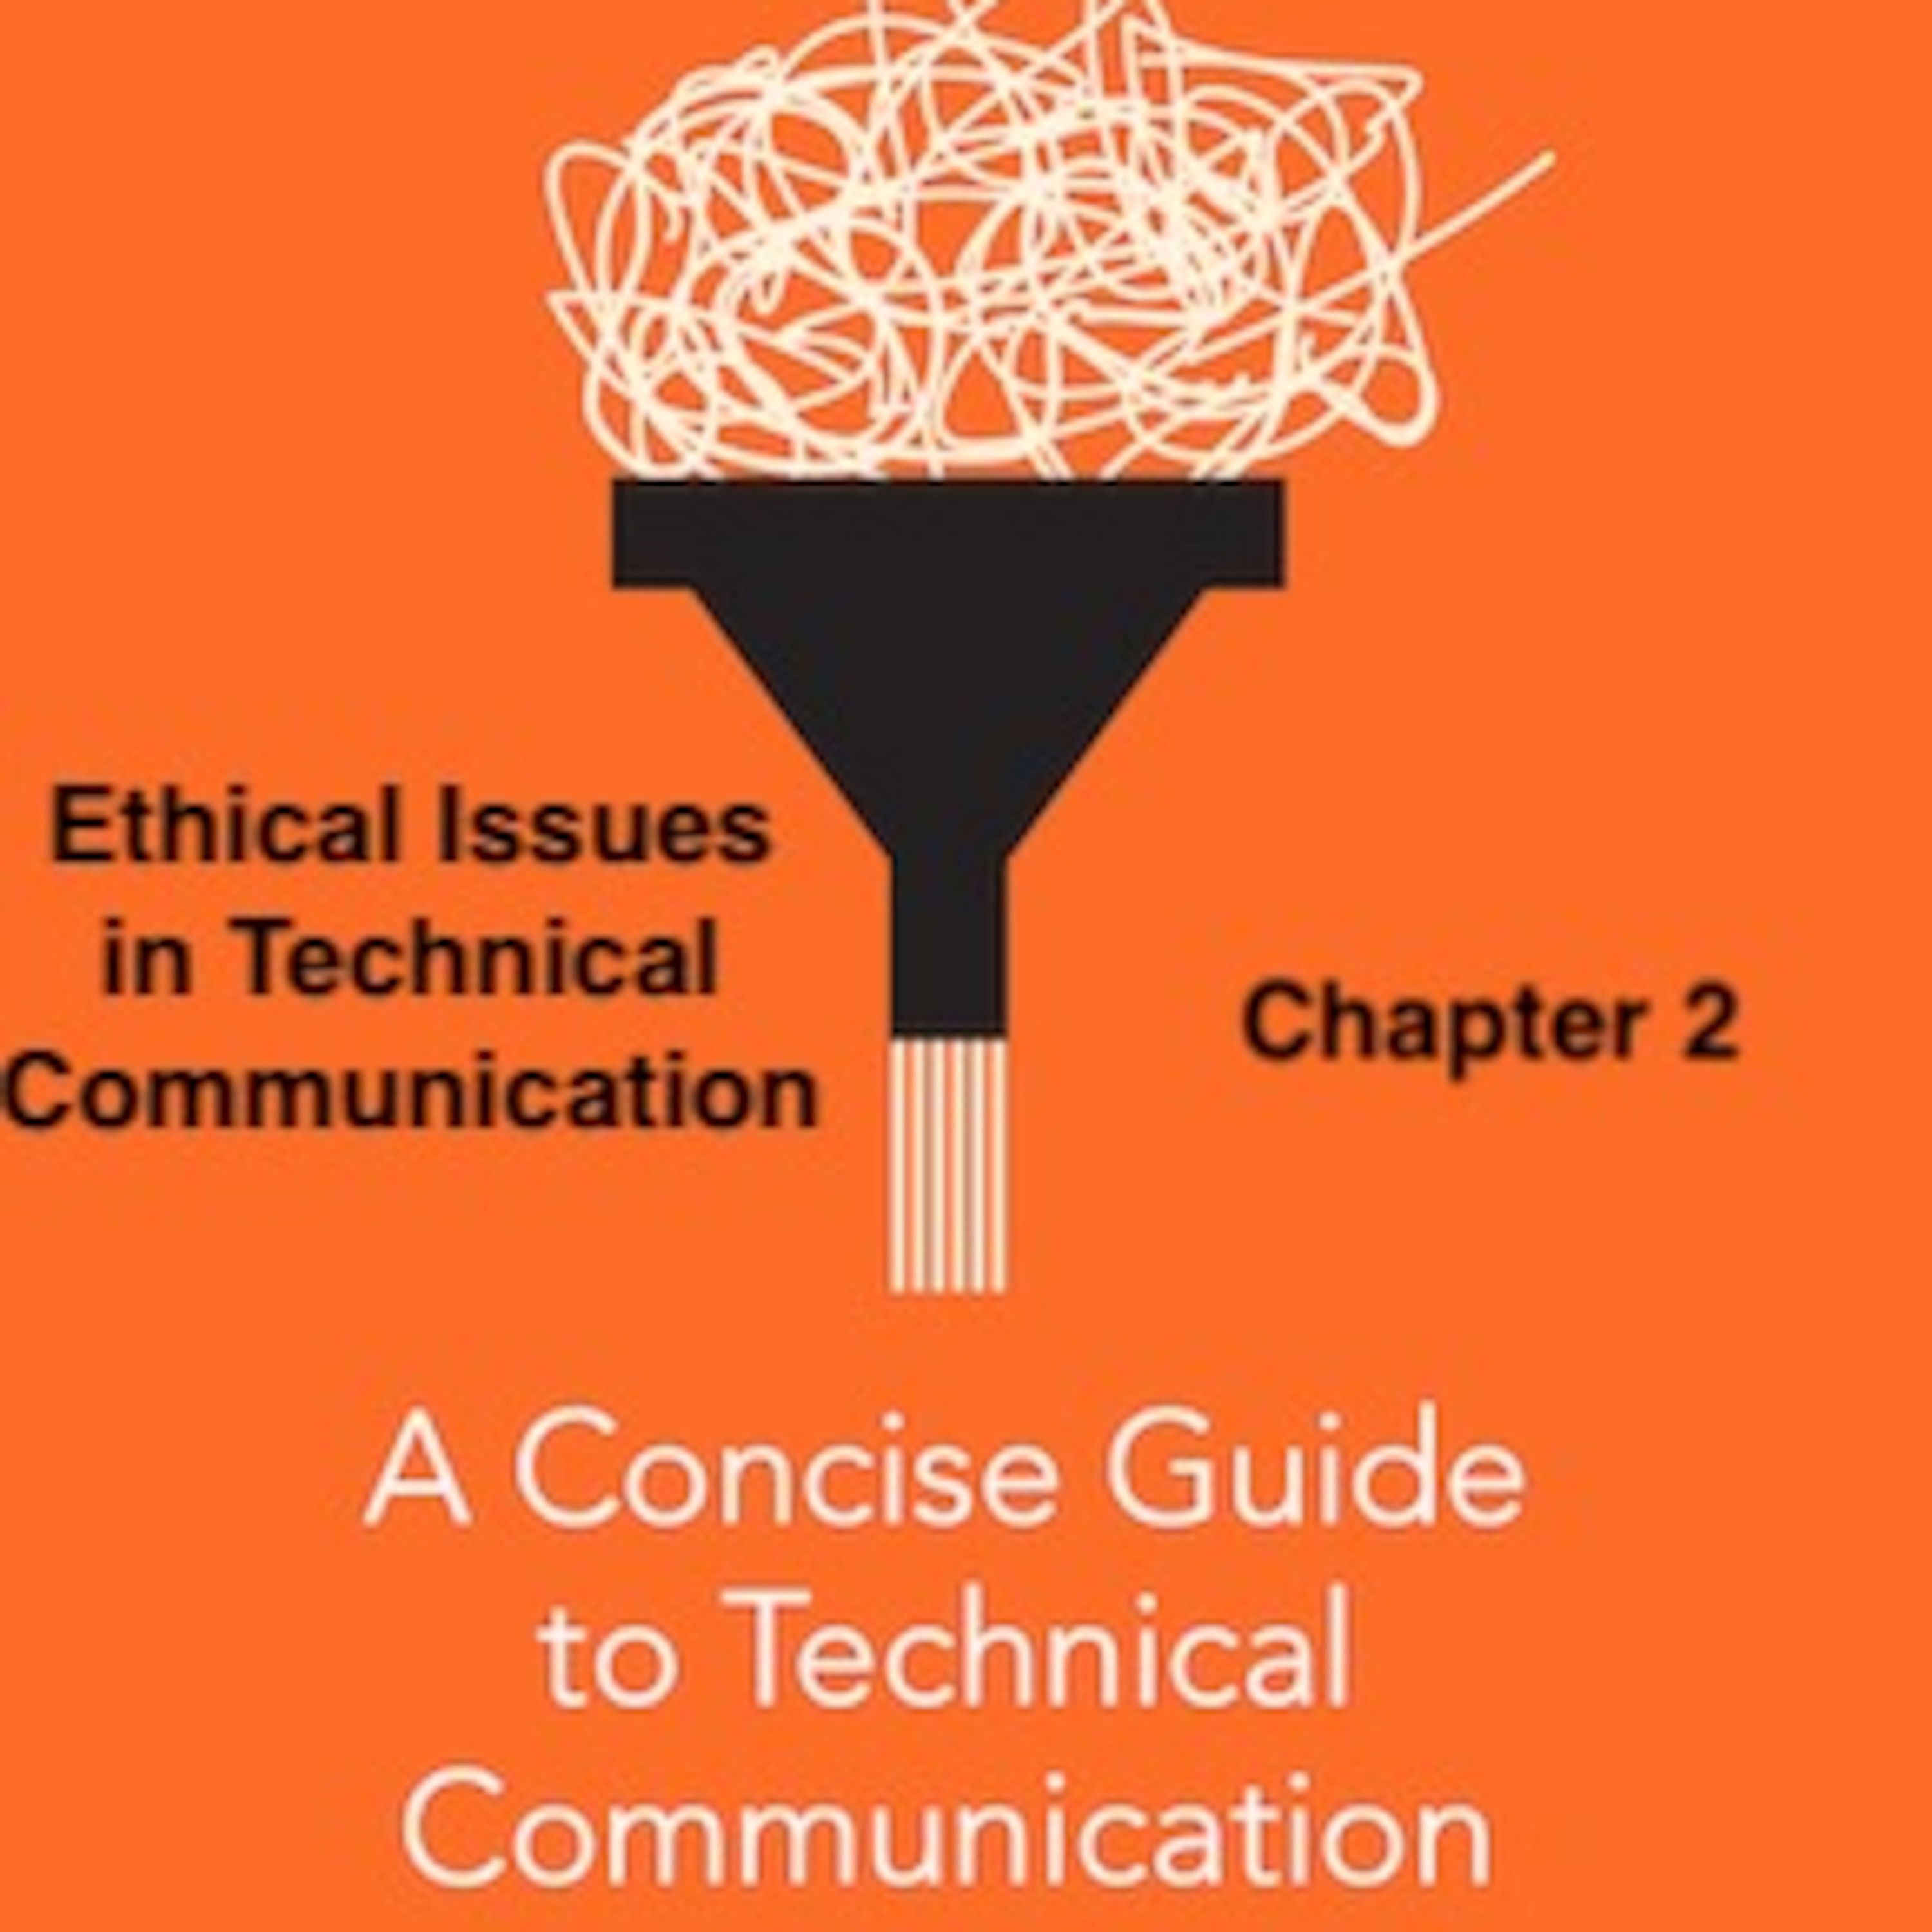 Episode 44: Ethical Issues in Technical Communication